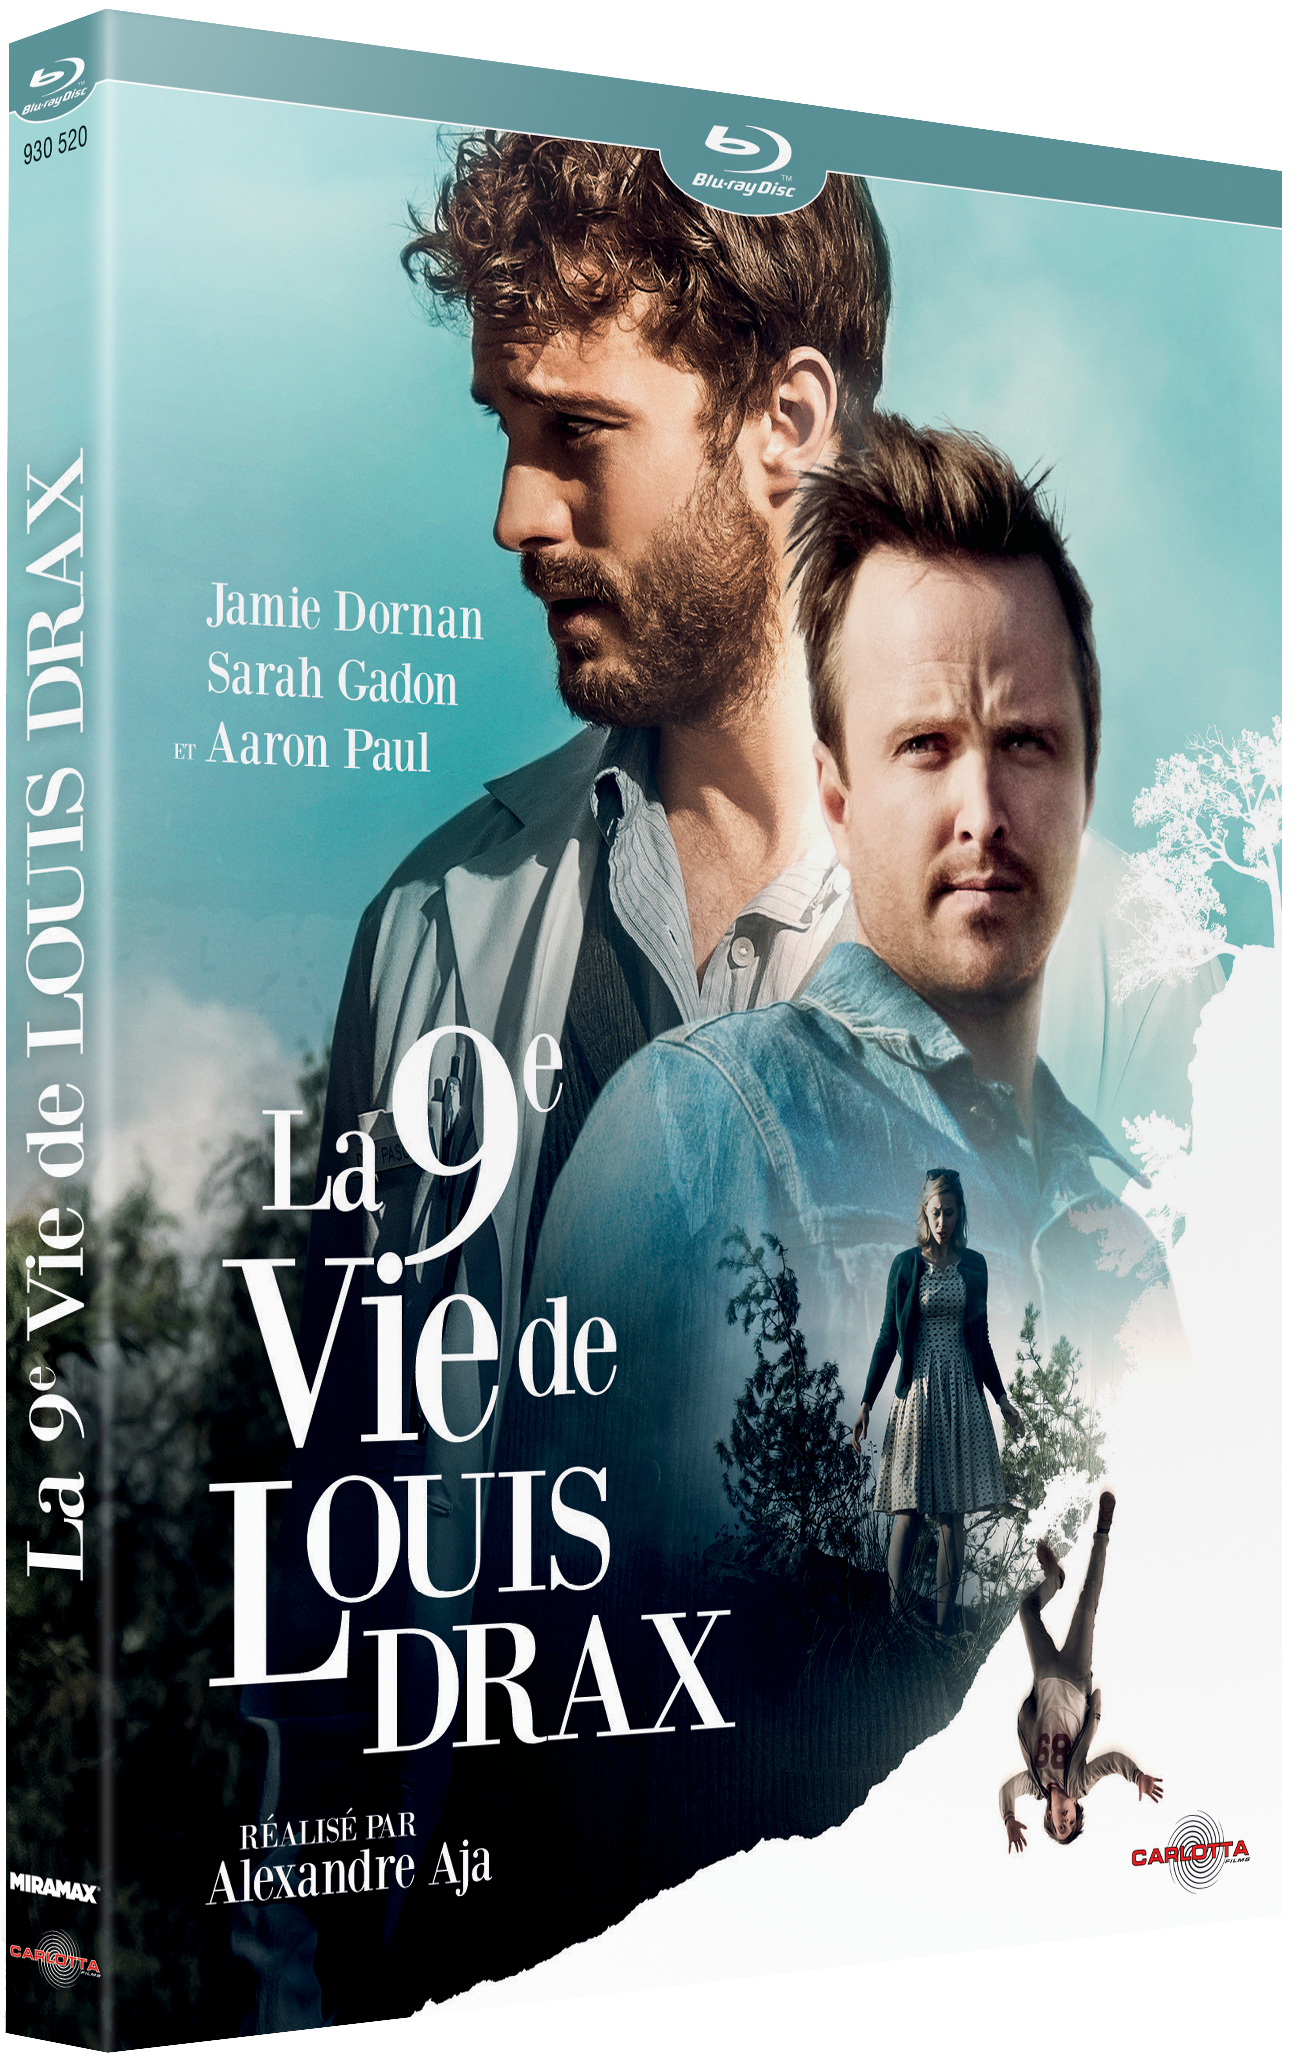 la neuvieme vie de louis drax sortie directe en blu ray et dvd actus blu ray et dvd freakin. Black Bedroom Furniture Sets. Home Design Ideas